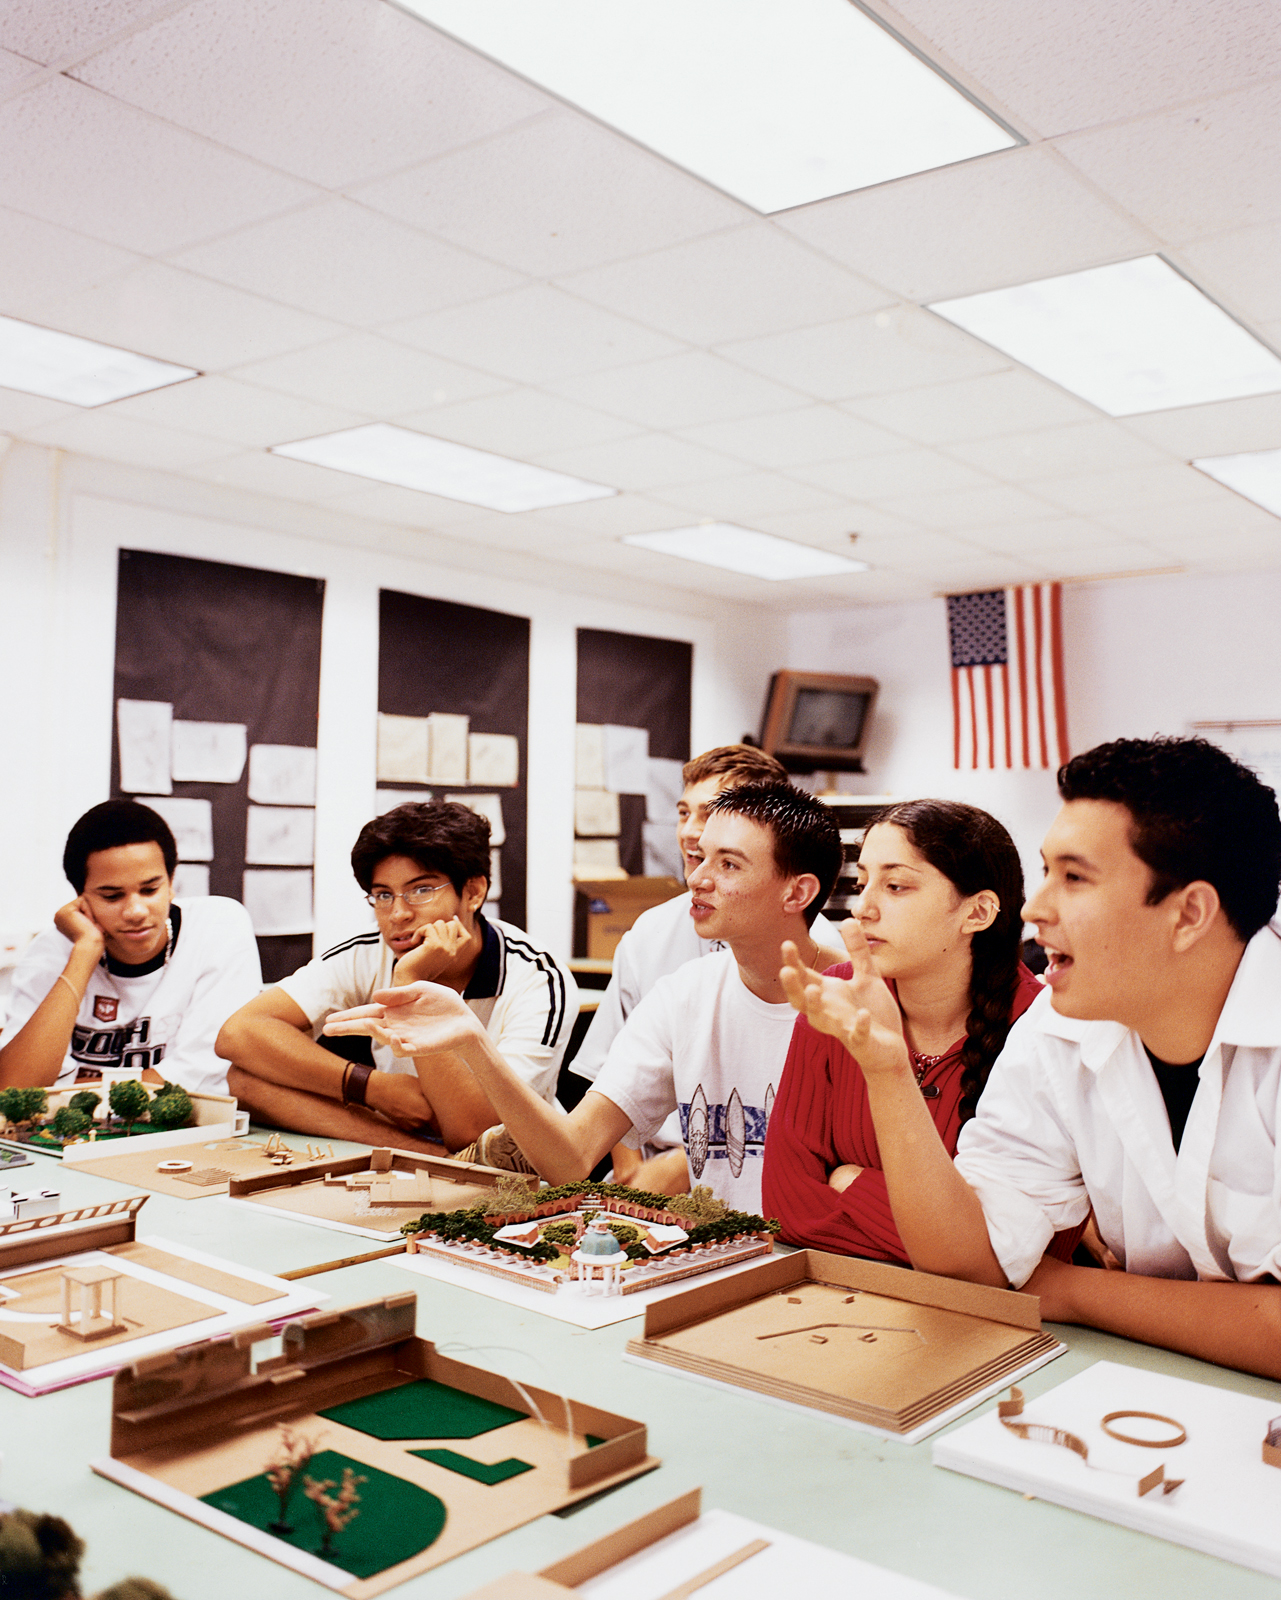 """Voted """"Cool School of the Month"""" by pop-culture barometer Teen People, DASH opens up the world of design to students who """"are not the type to fit in a typical high school."""""""